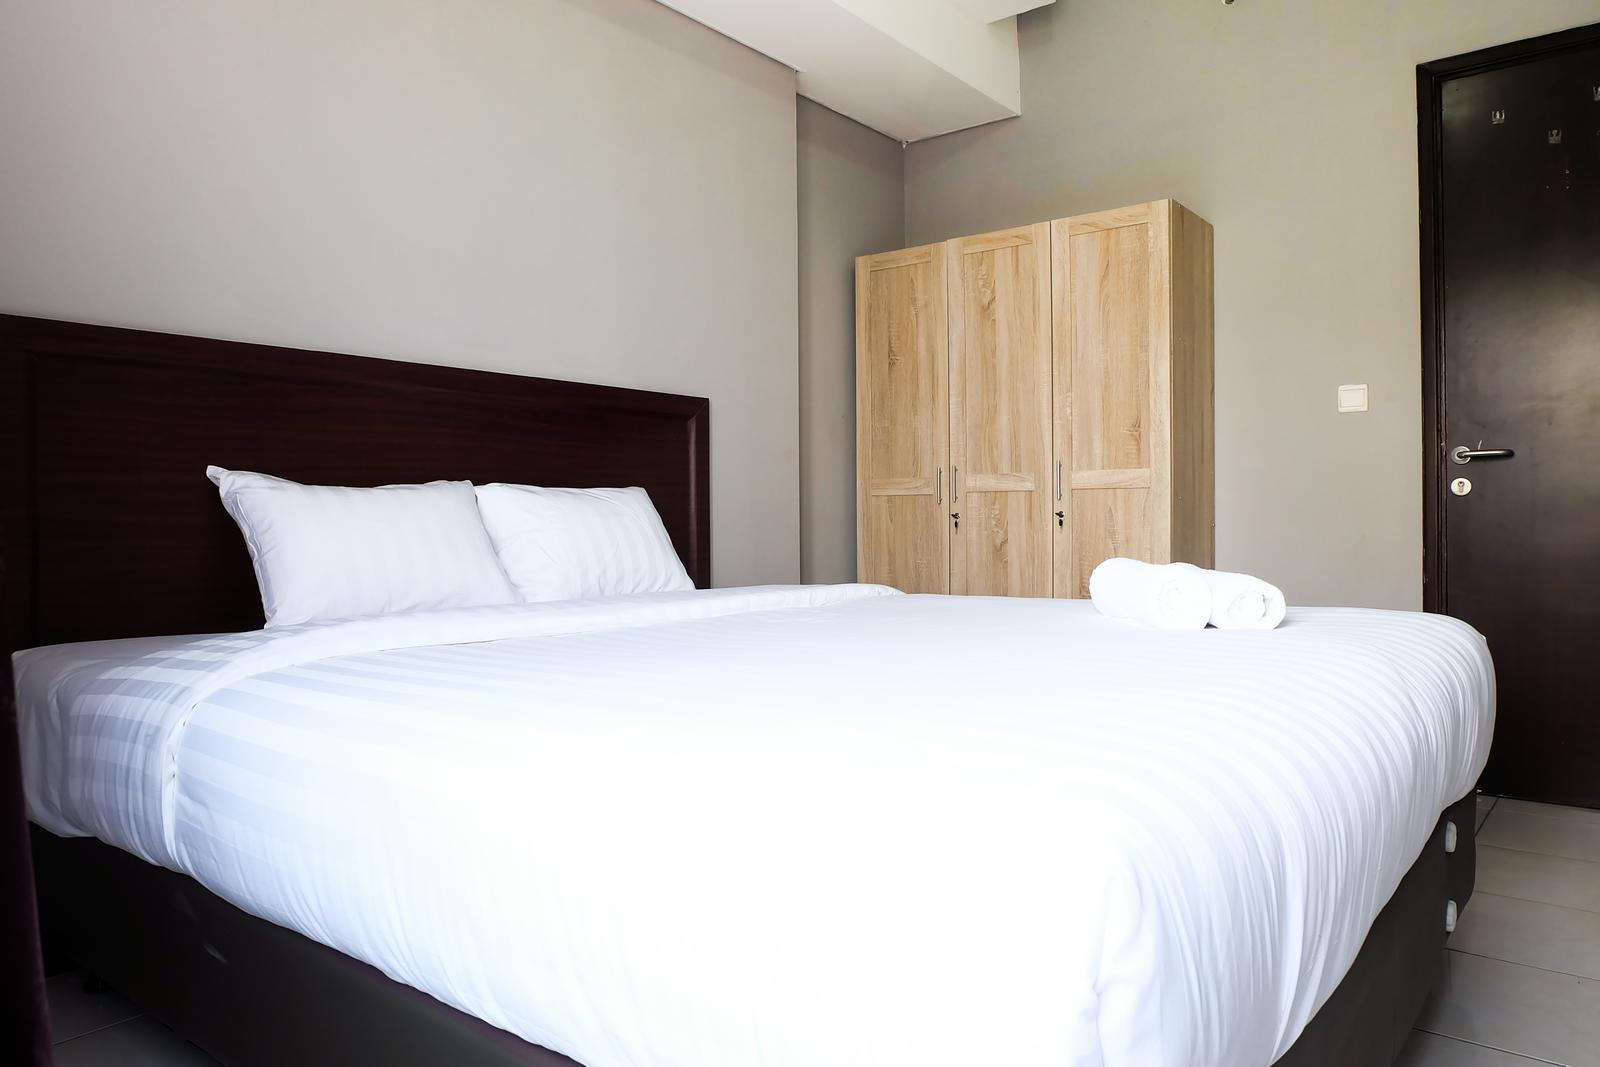 Apartemen Boutique Kemayoran - 2BR Apartment At Boutique Kemayoran By Travelio